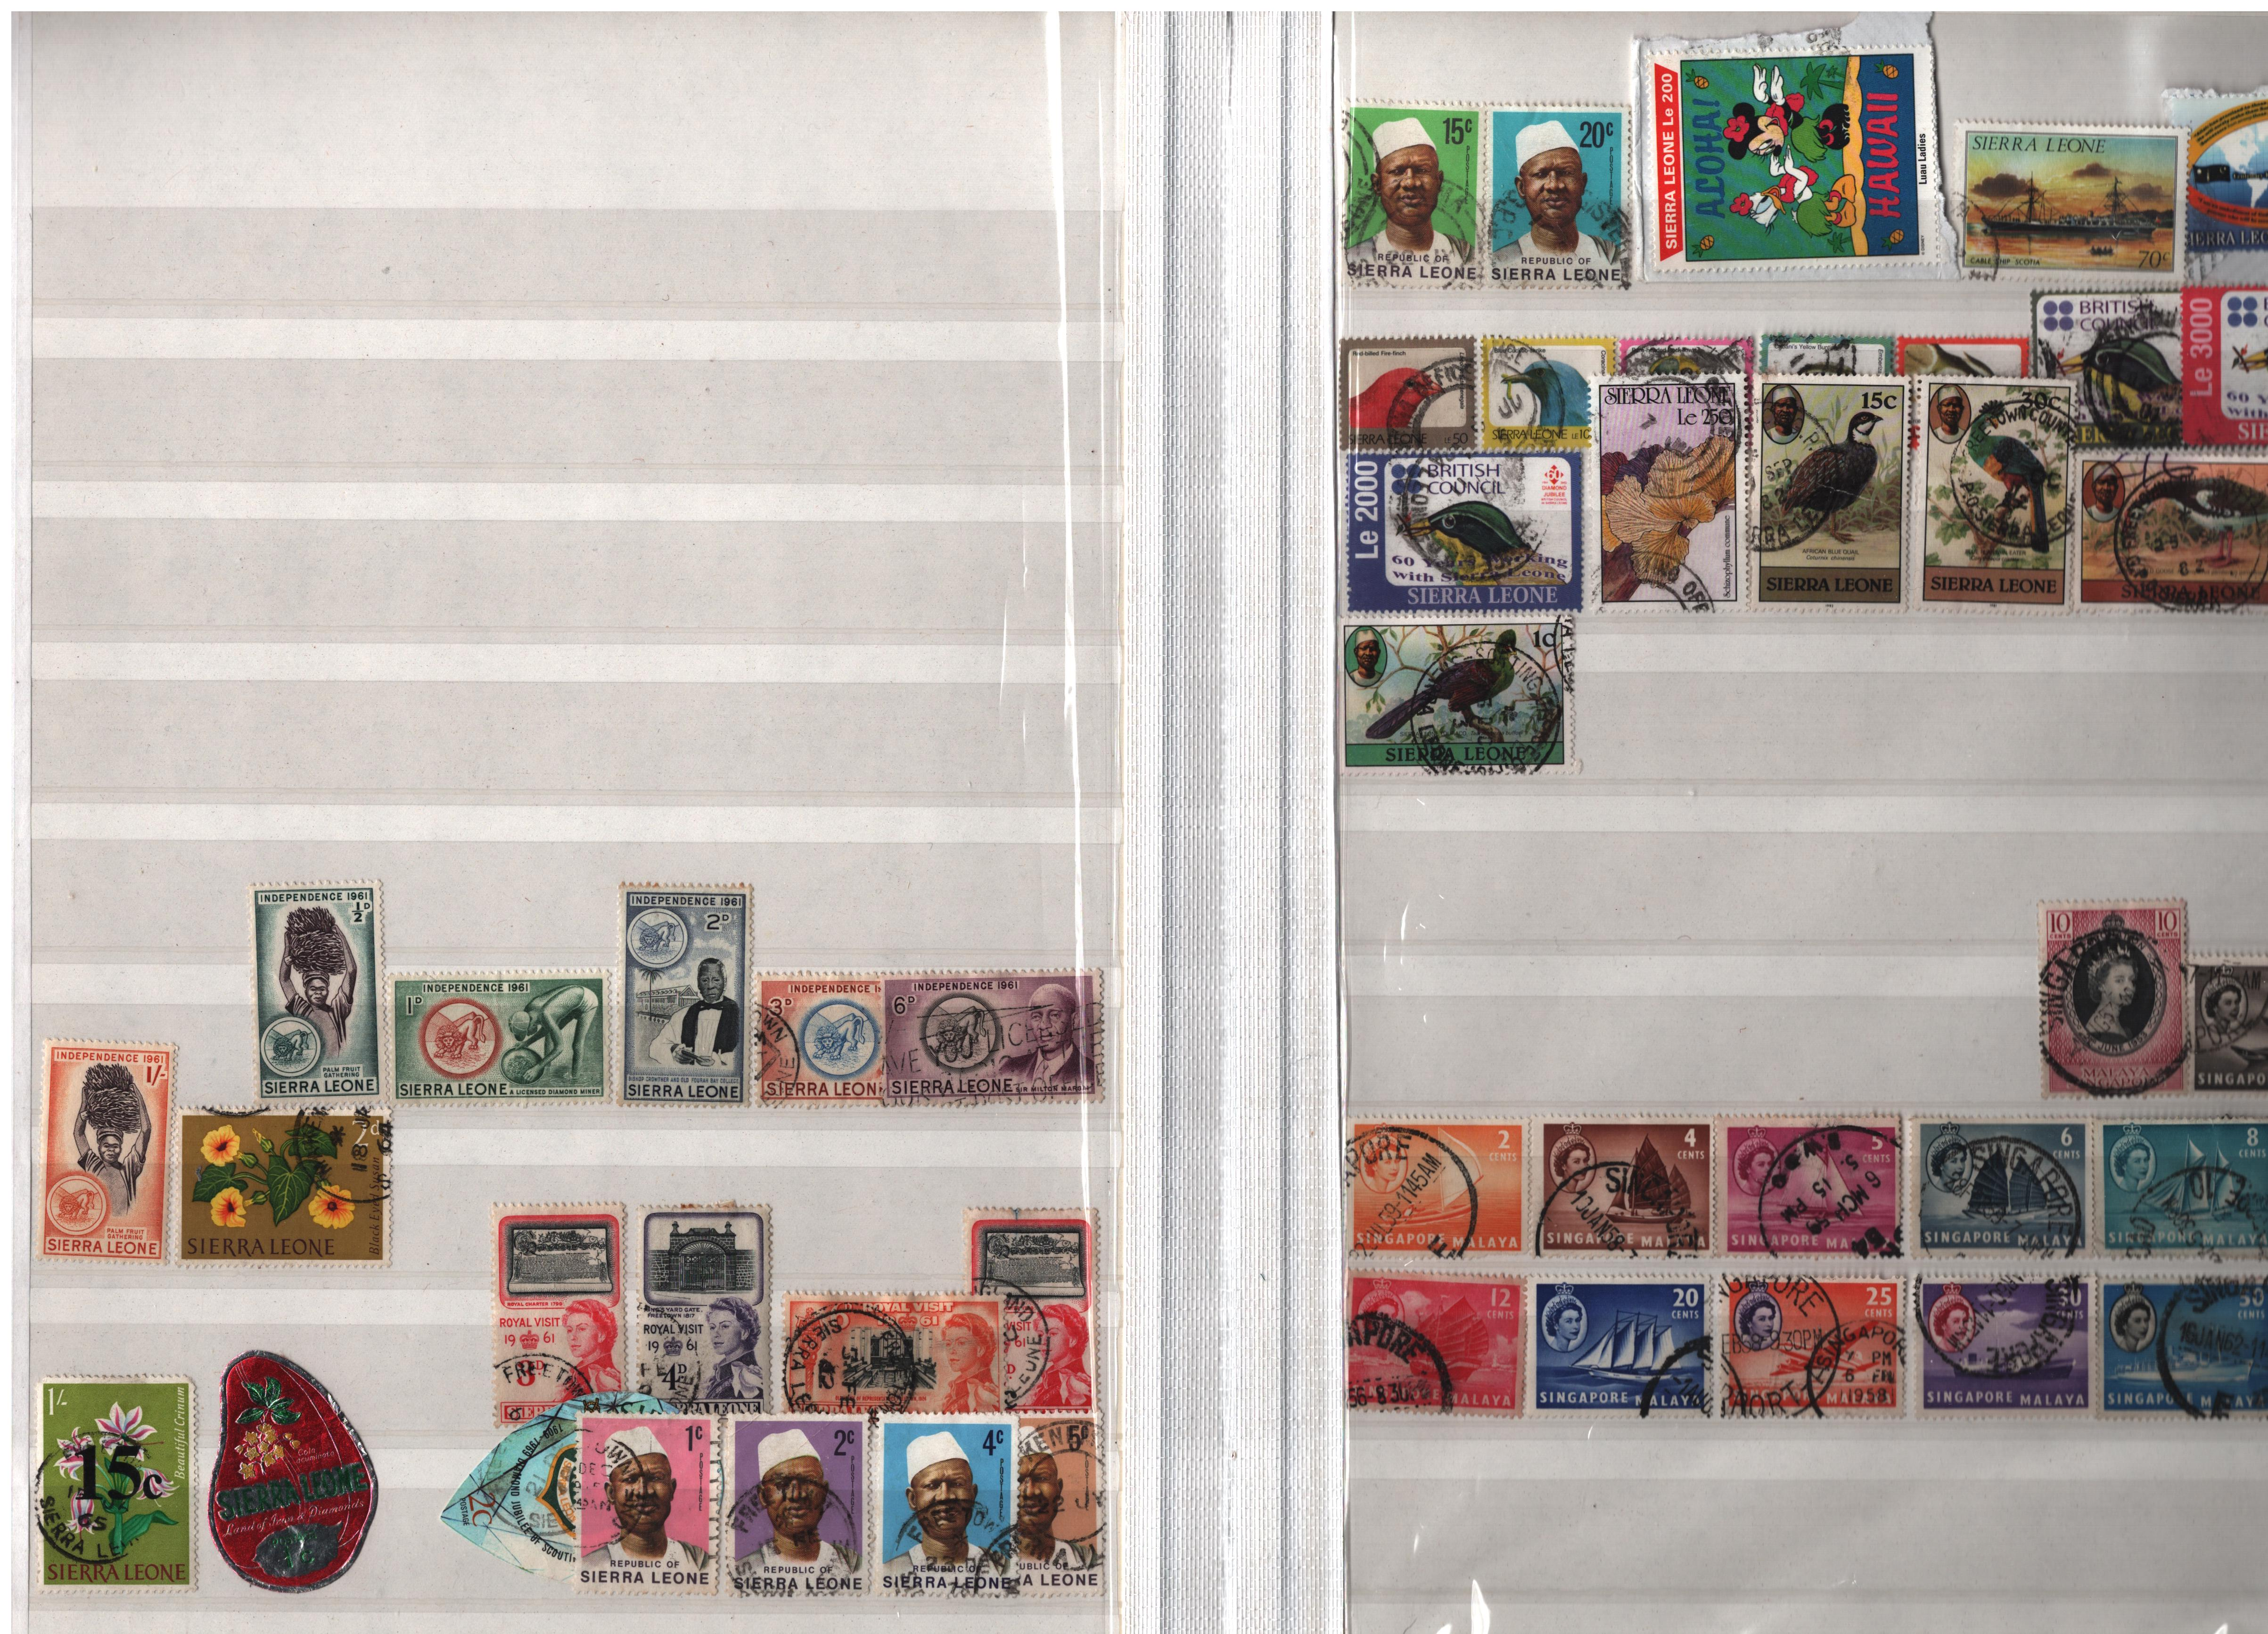 BCW stamp collection on 32 pages in stock book. Includes NZ, Nigeria, St Vincent, Zambia and many - Image 3 of 3